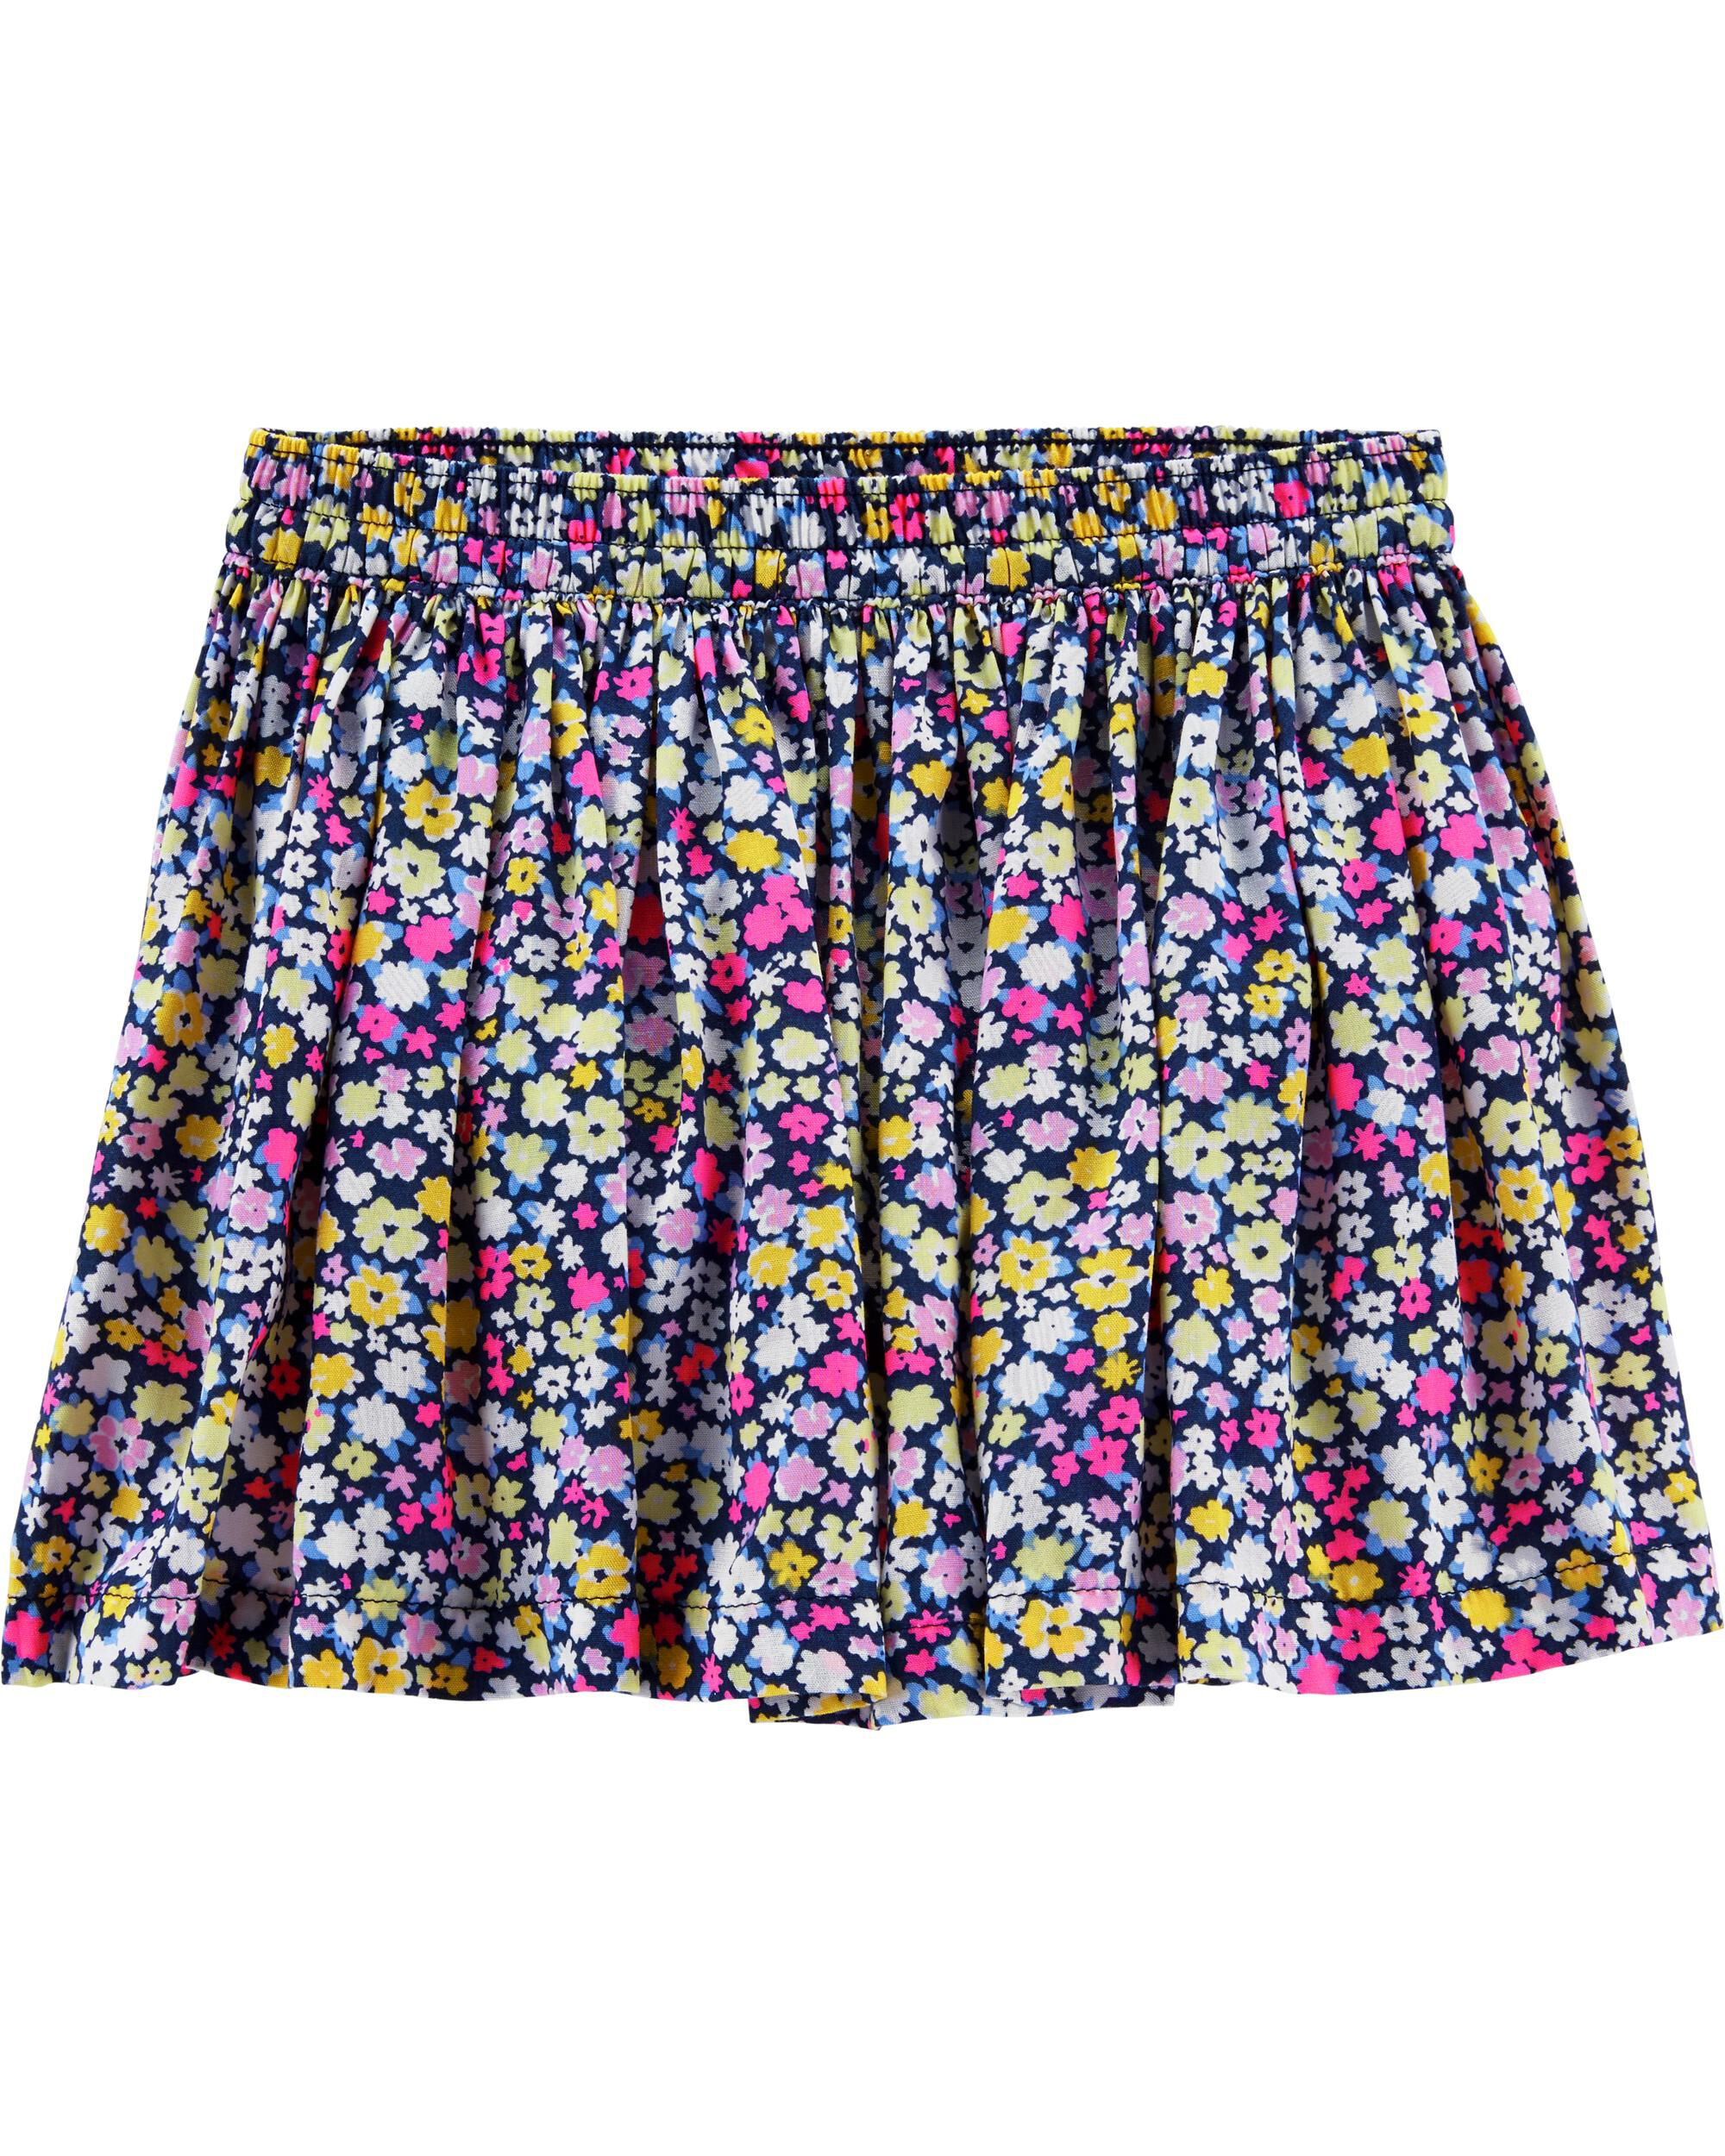 *Clearance*  Floral Skirt